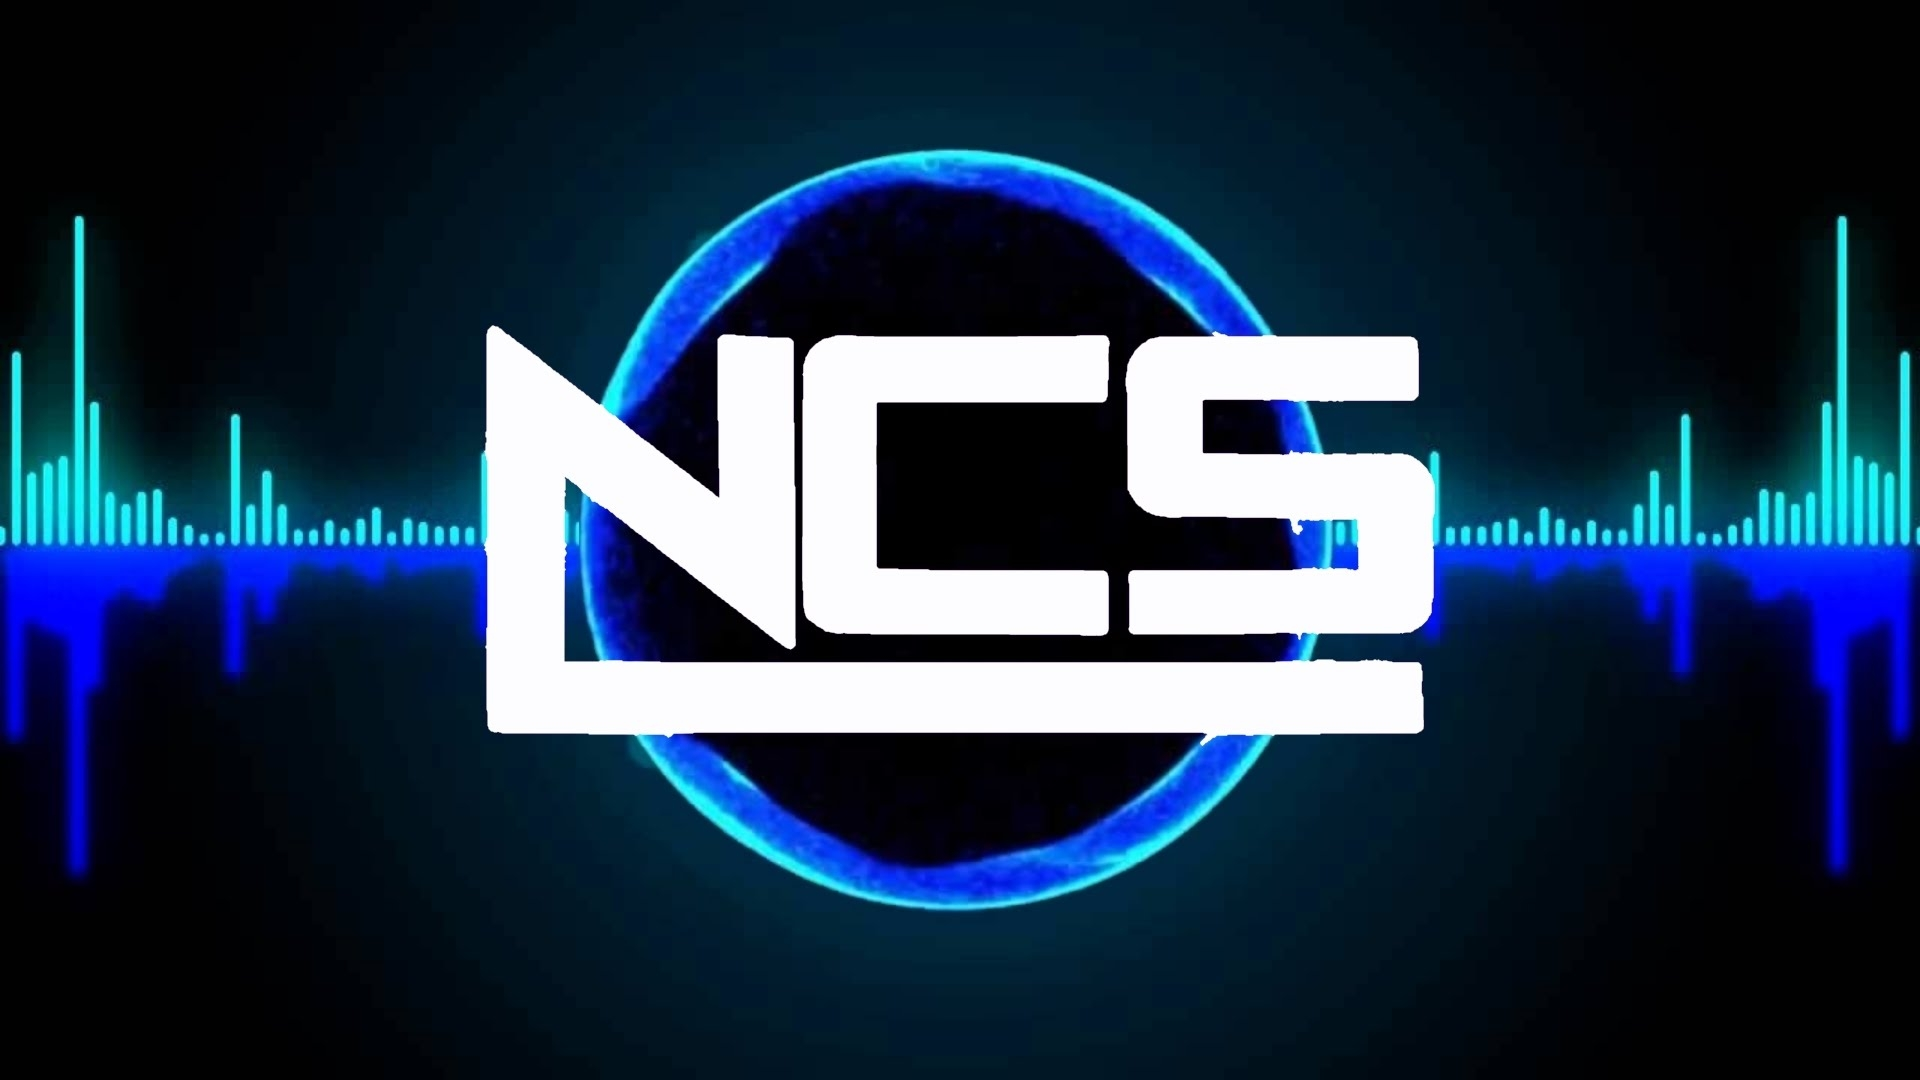 Free-cool-background-music-for-games-Download-Best-Ncs-Gaming-Video-Background-Music-No-Copyrigh-wallpaper-wp3605806